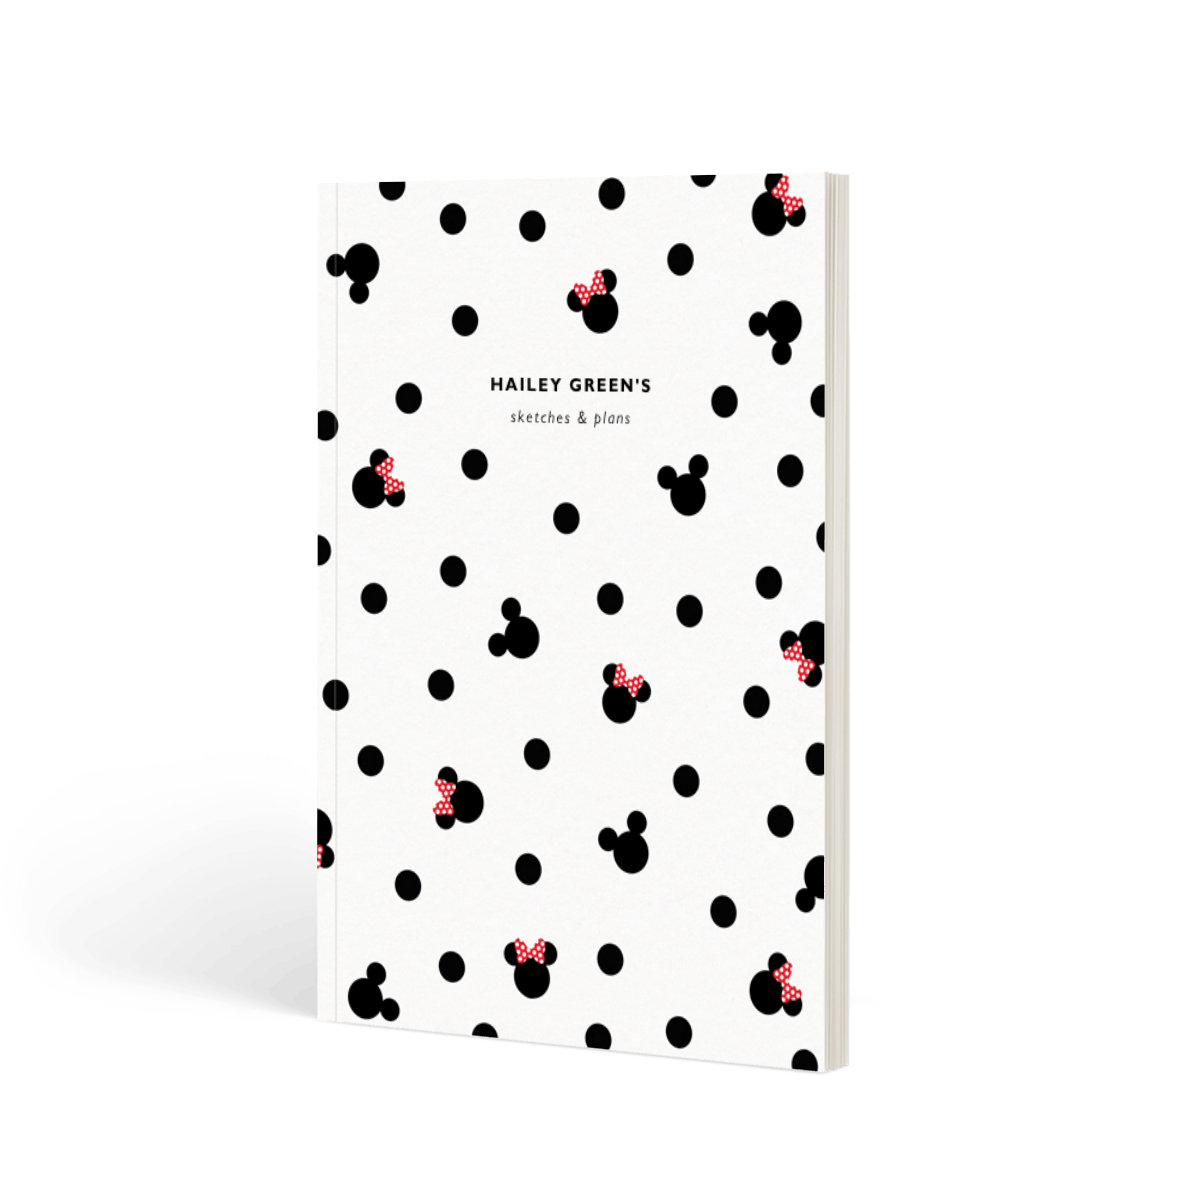 Https%3a%2f%2fwww.papier.com%2fproduct image%2f36828%2f3%2fmickey minnie mouse 9268 front 1540545633.png?ixlib=rb 1.1